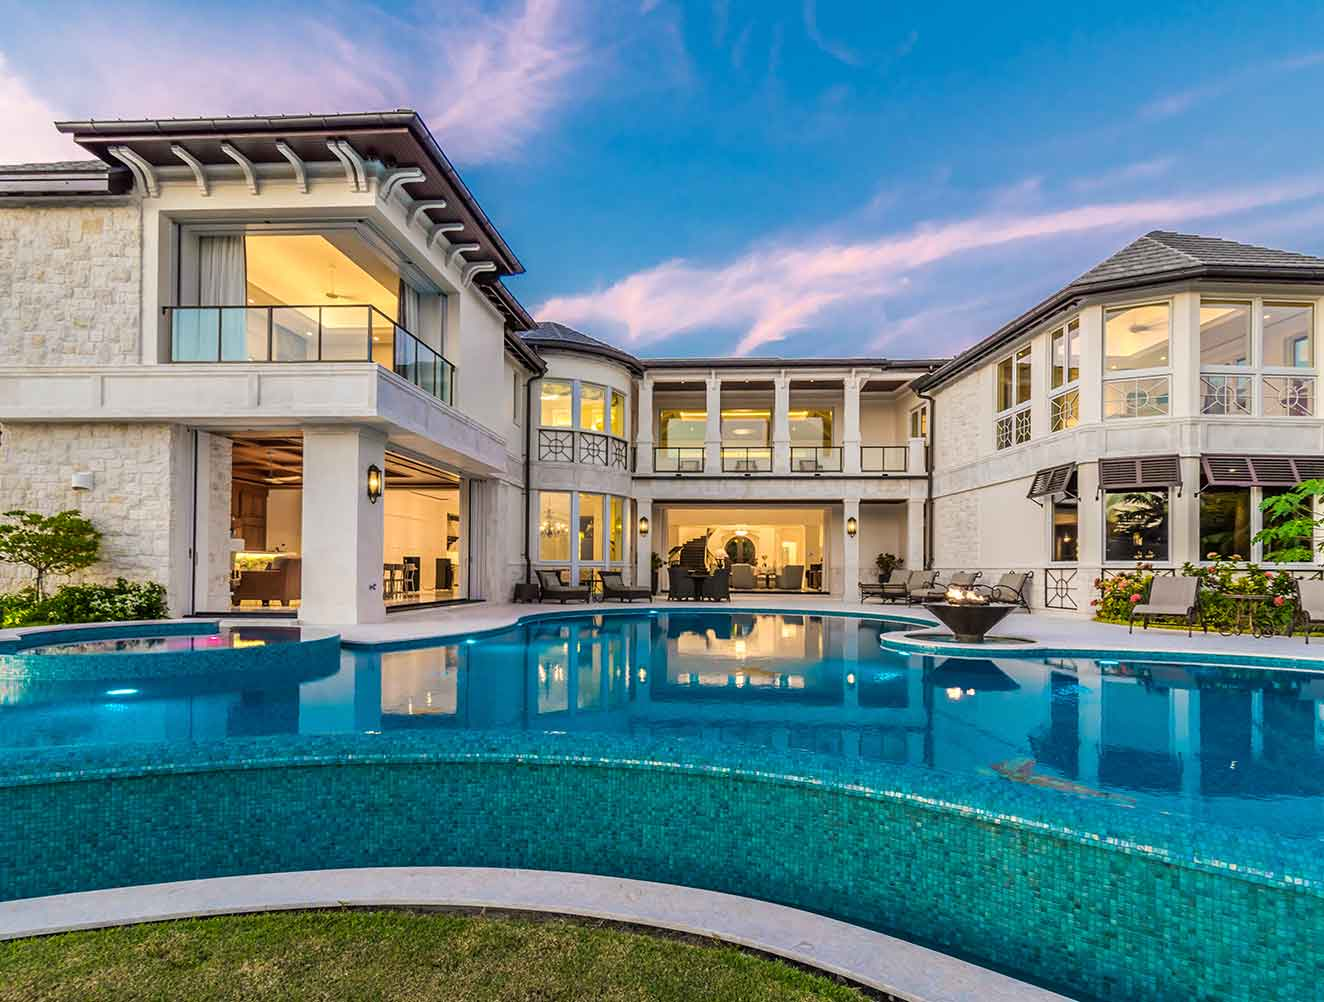 Infinity Pool and Exterior Architectural Details at Nelson's Walk Residence in Naples Florida, single family home designed by Kukk Architecture & Design Naples Architecture Firm